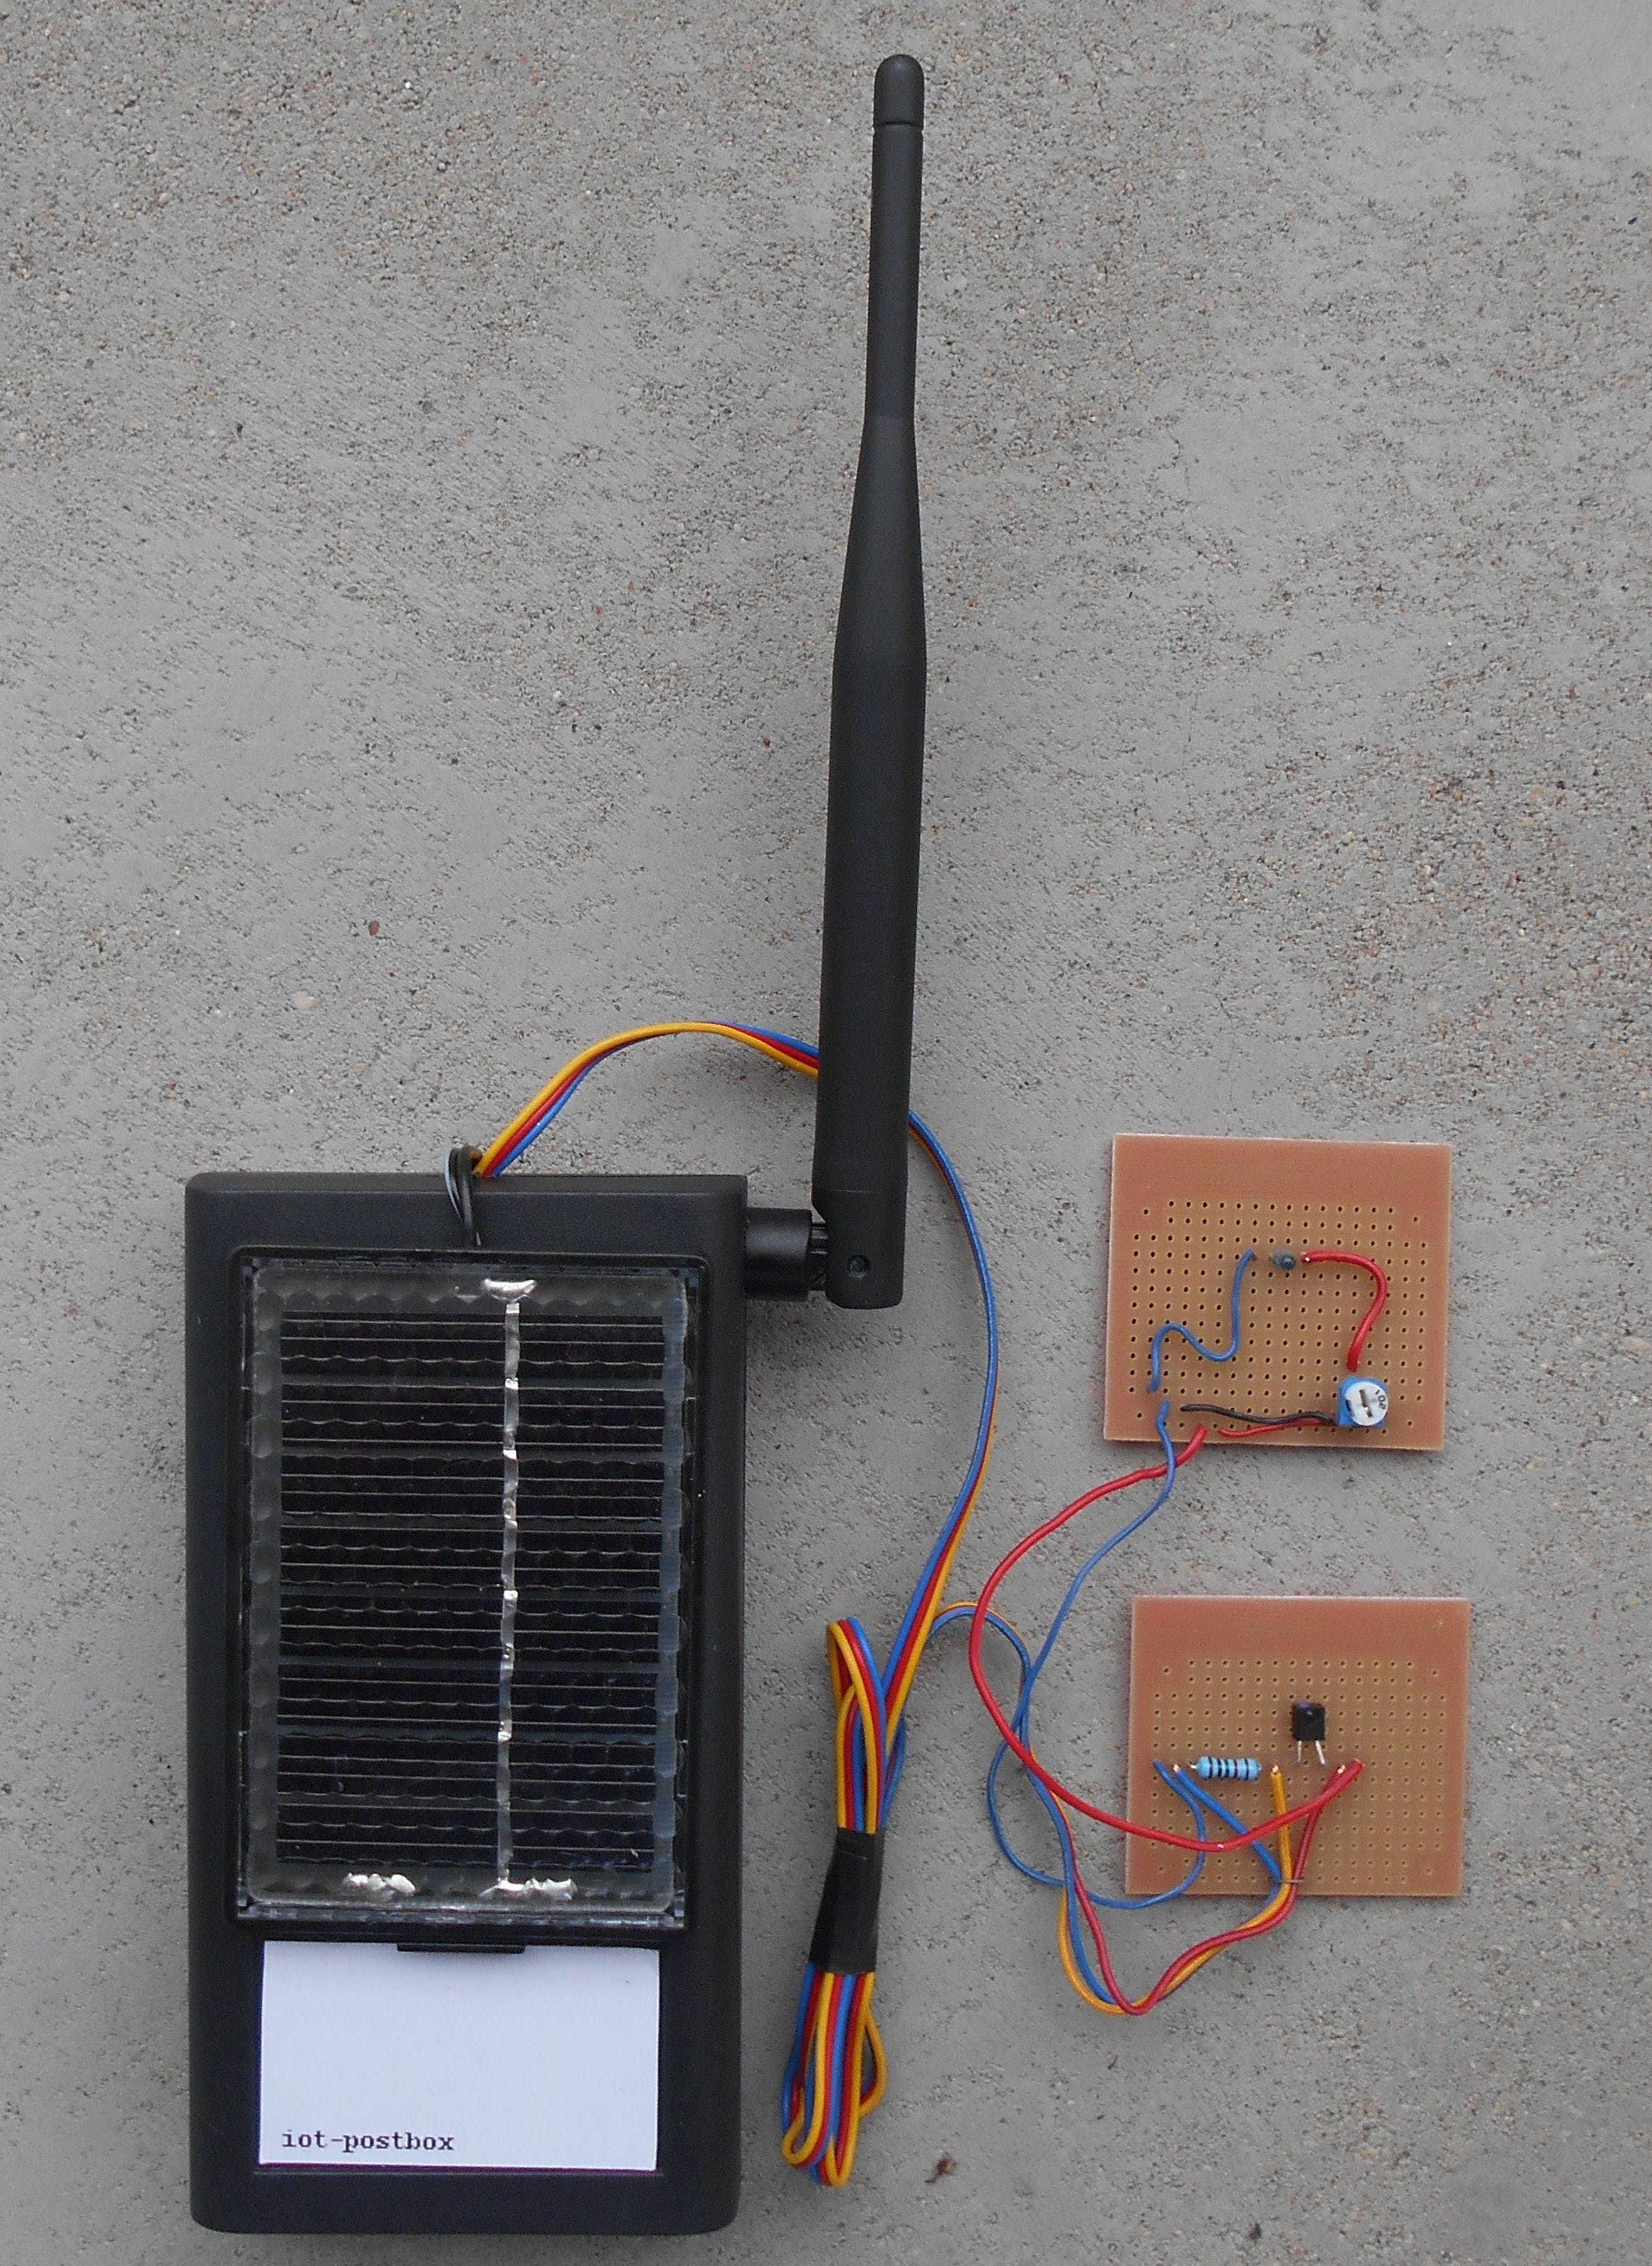 Picture 1 iot-postbox device and optical barrier